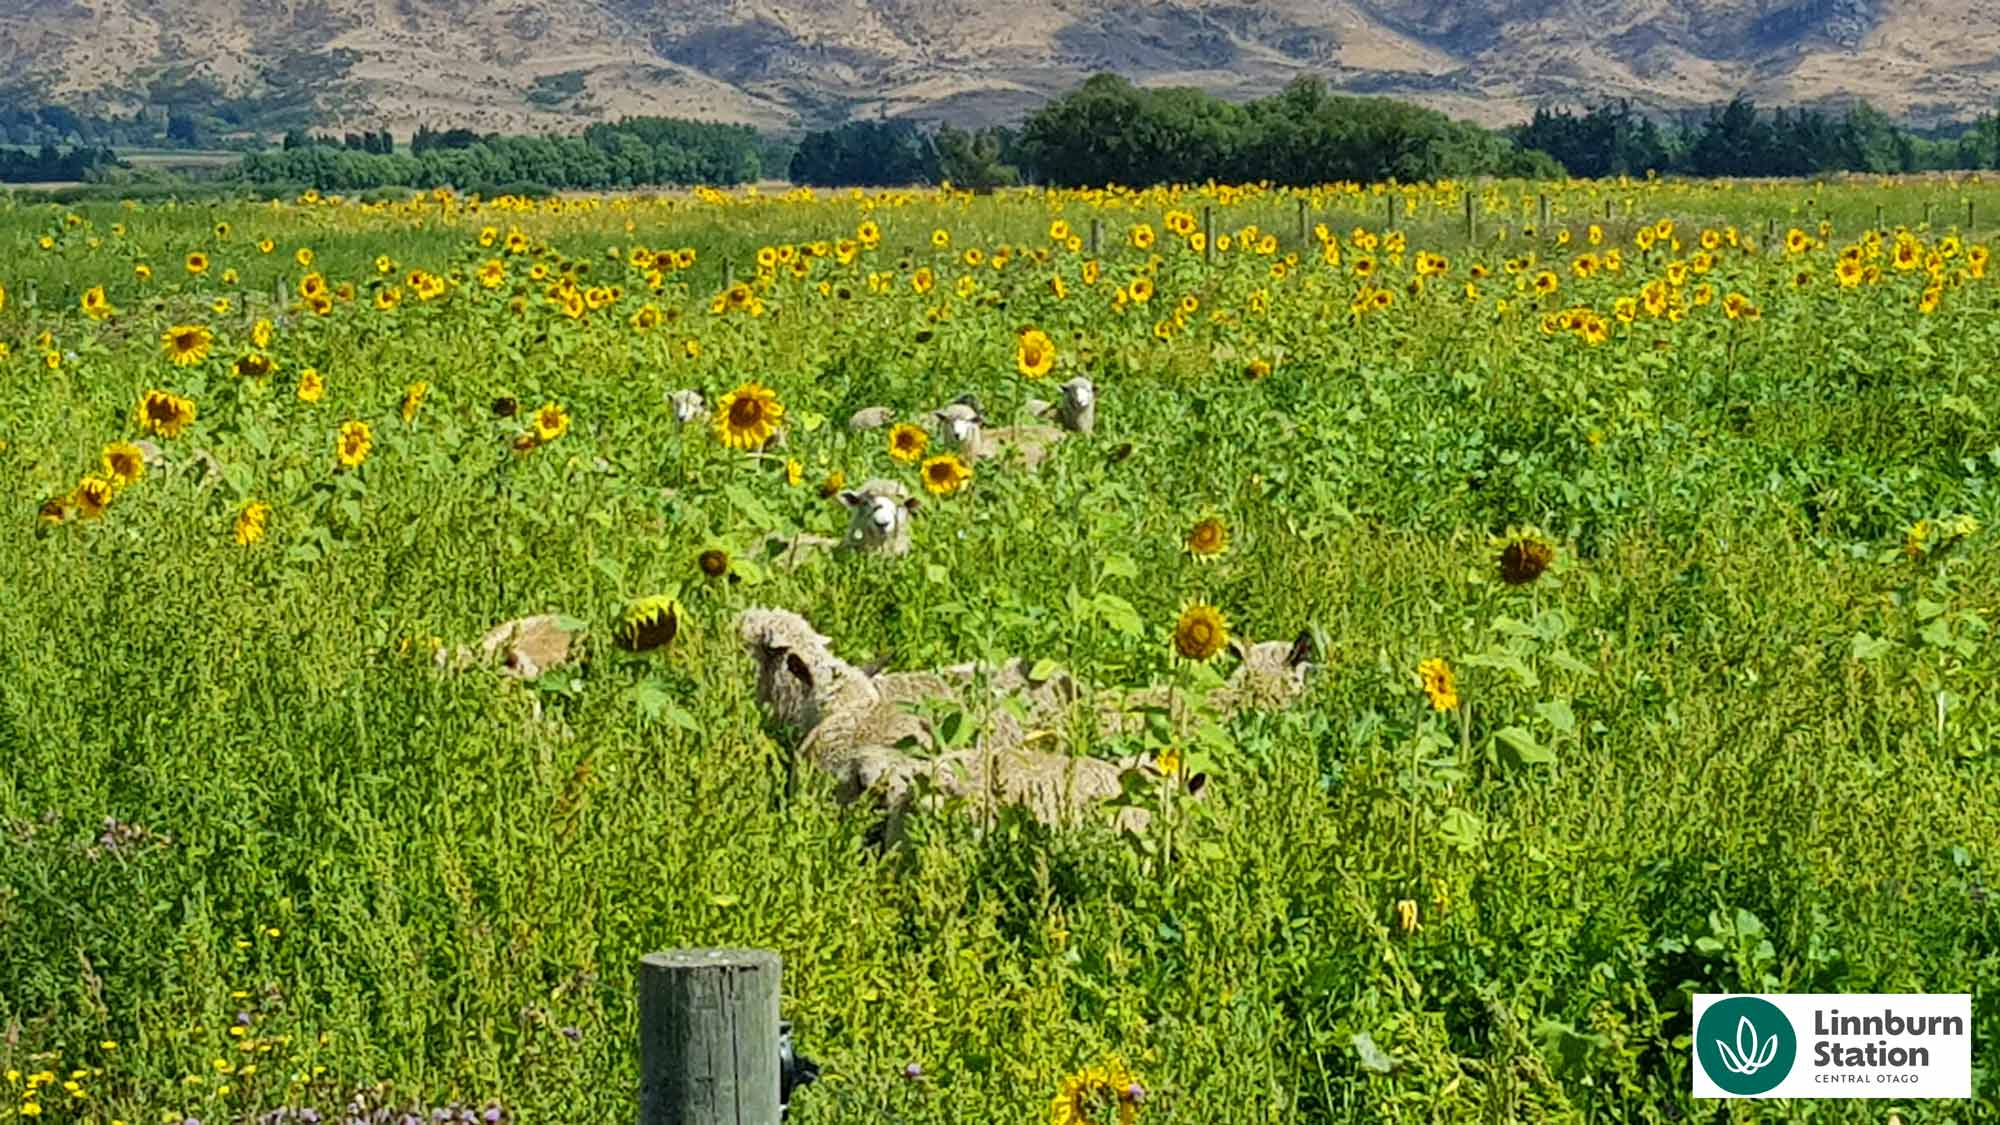 Lambs in Sunflowers